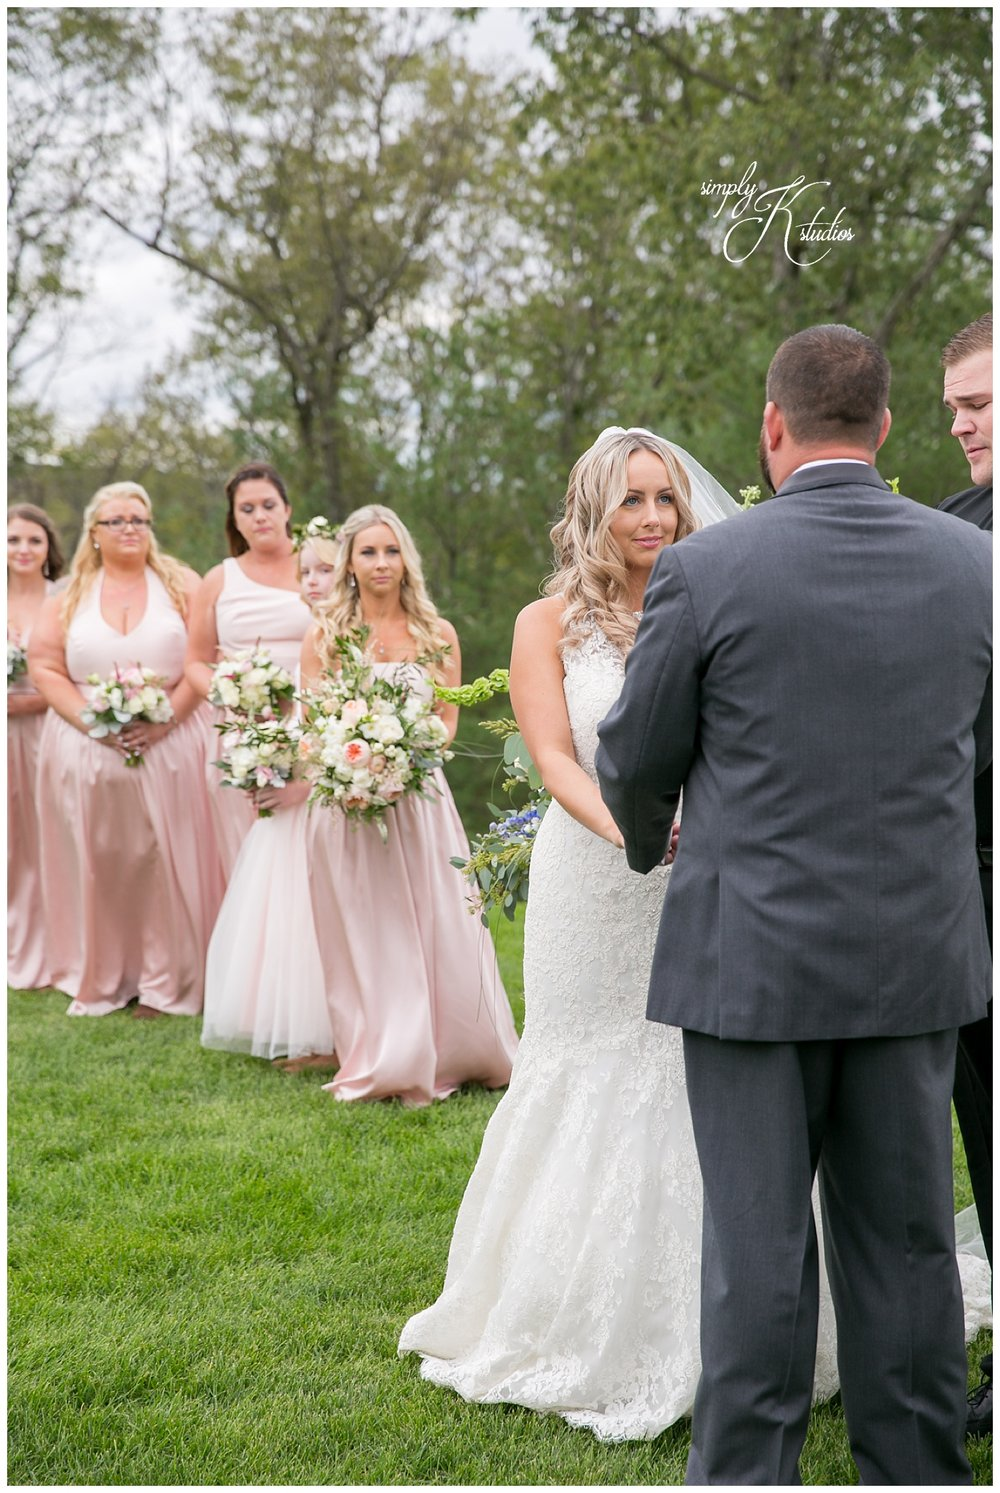 Wedding Ceremony in CT.jpg